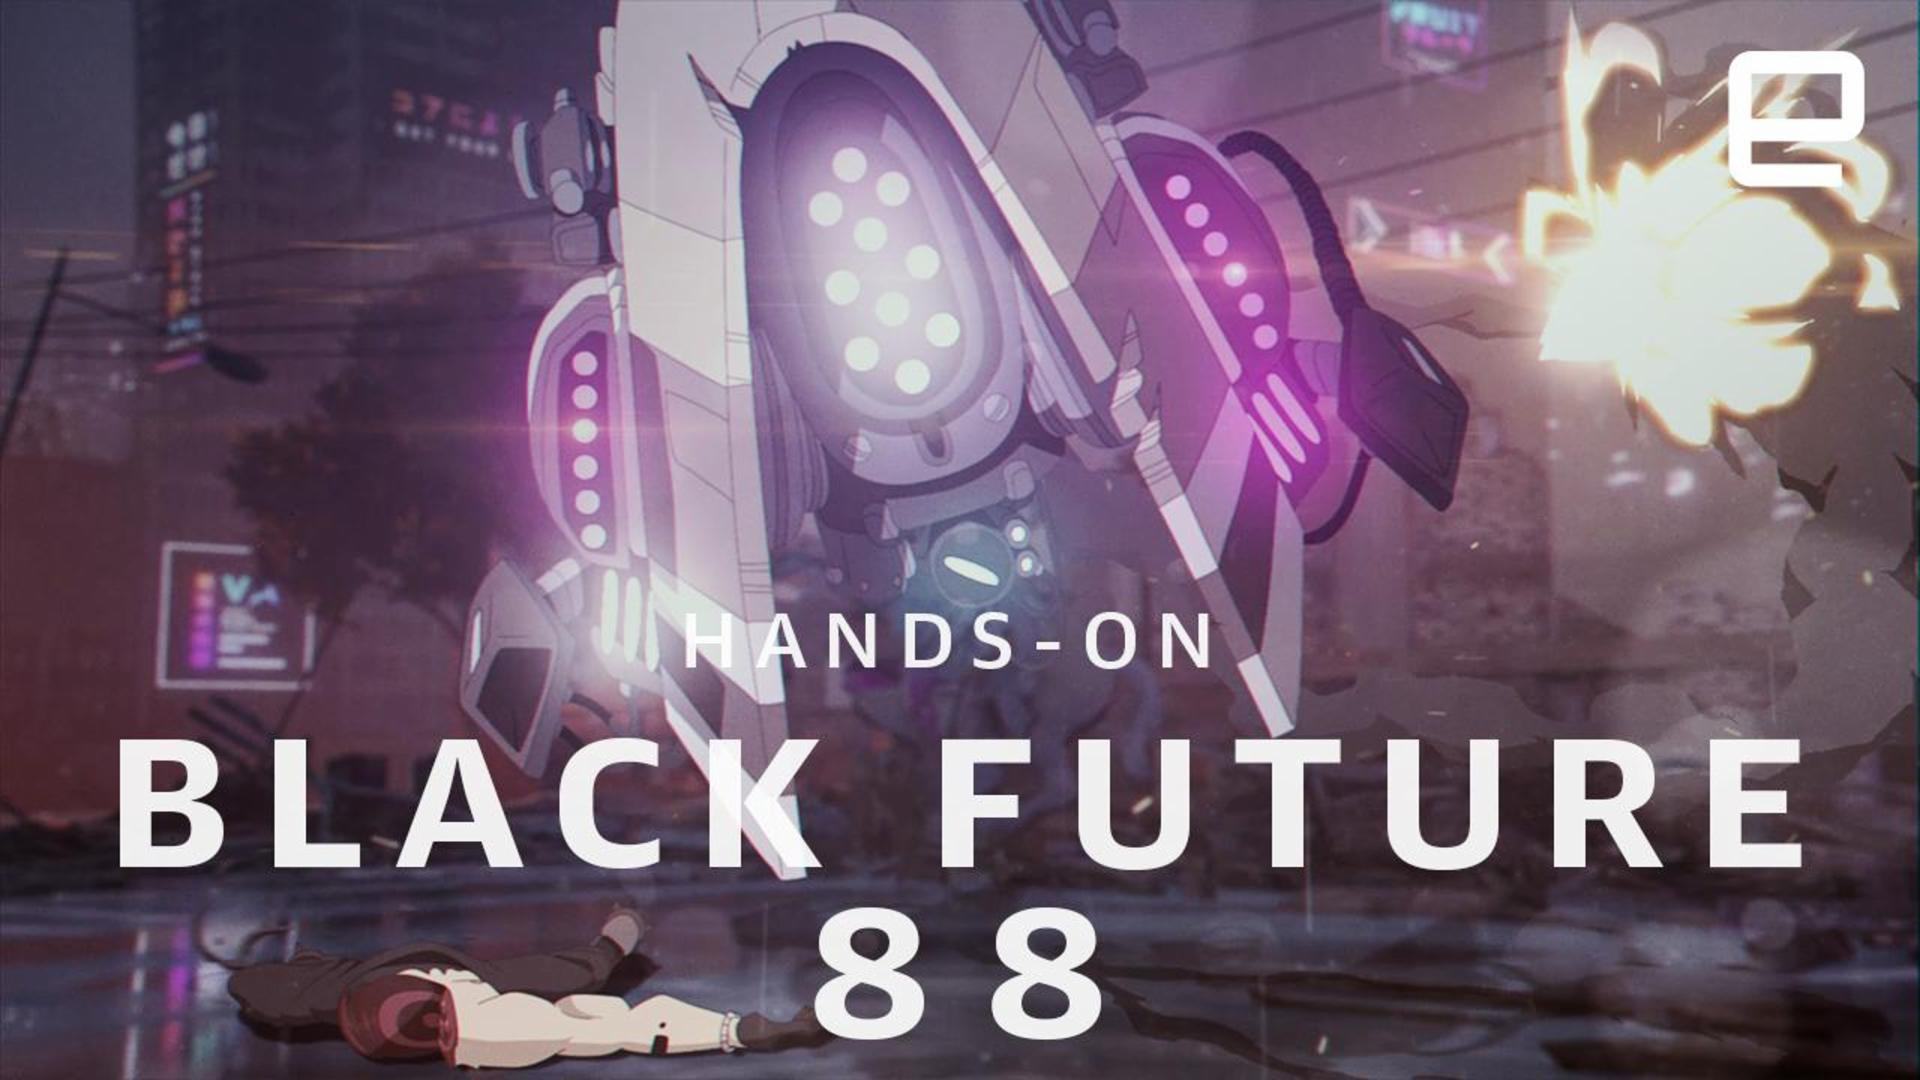 You only have 18 minutes to complete 'Black Future '88'